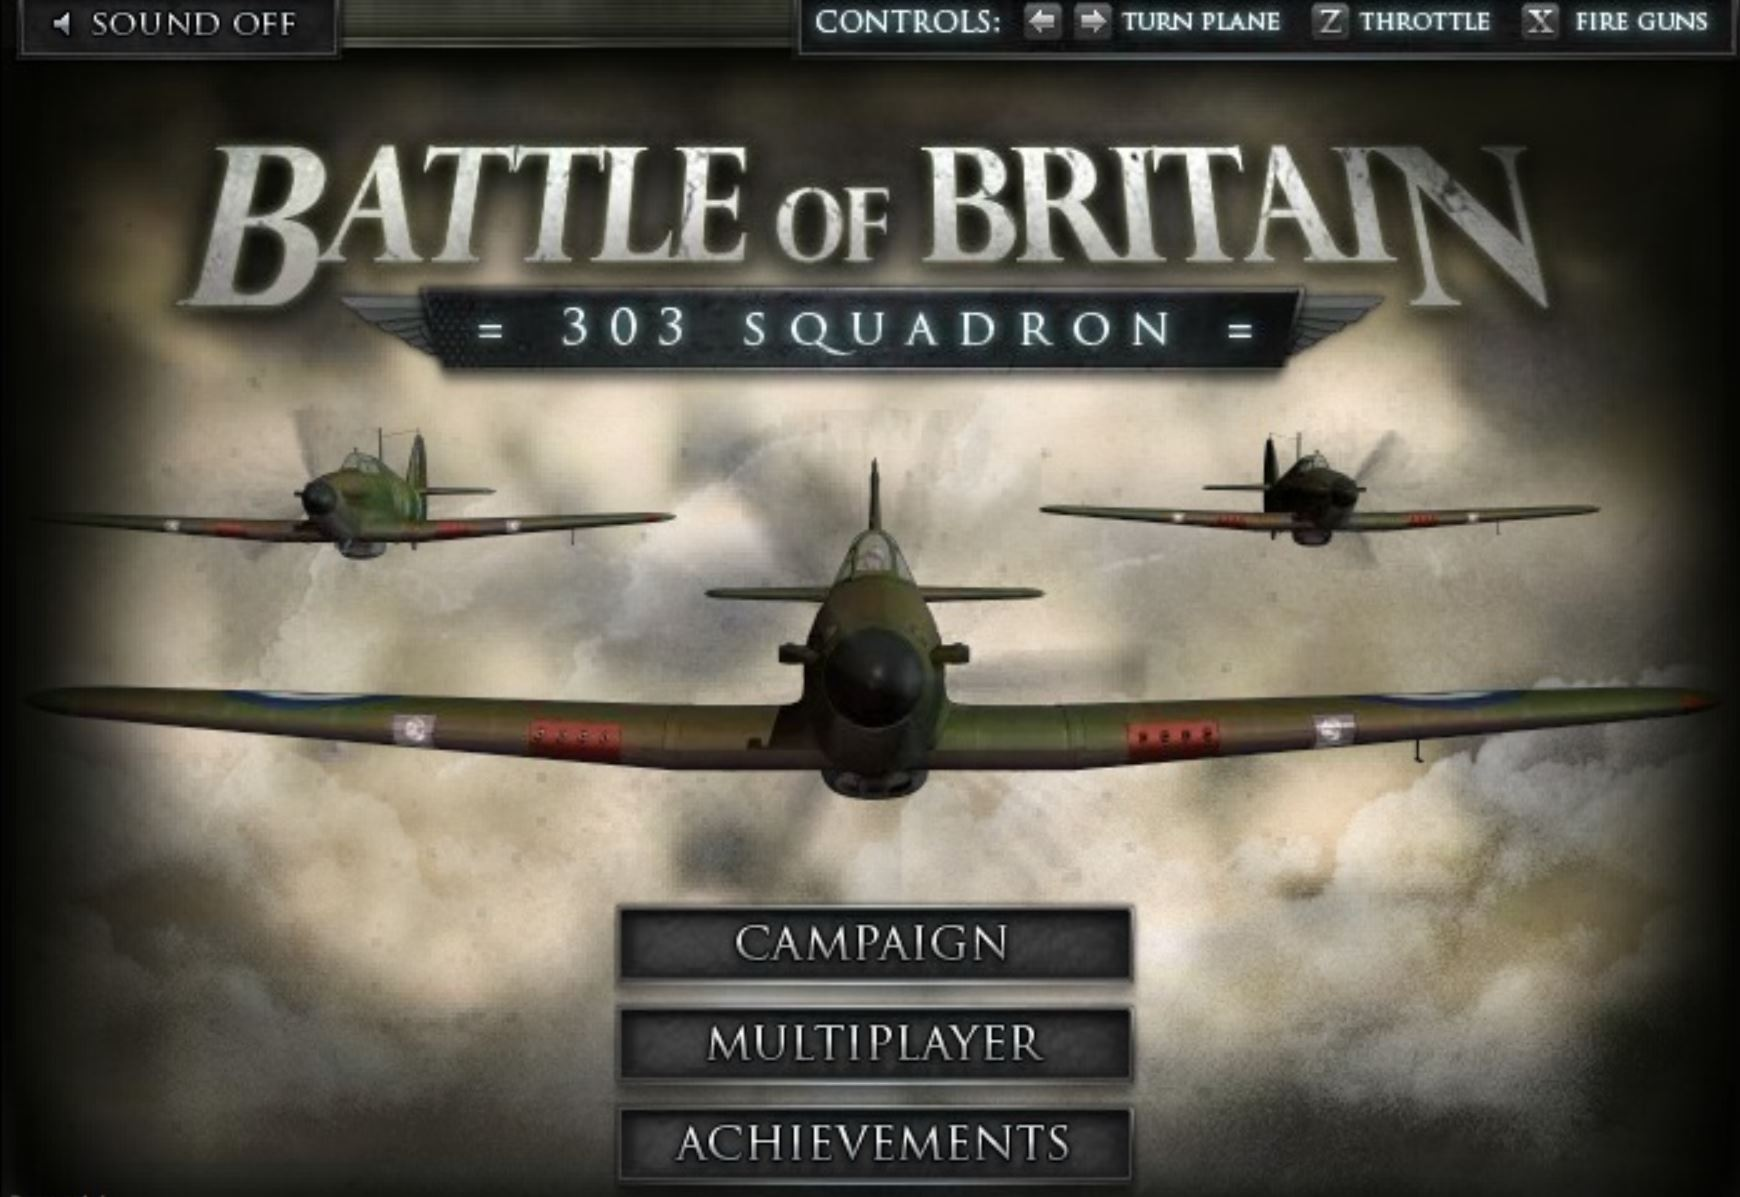 Battle of Britain - 303 Squadron